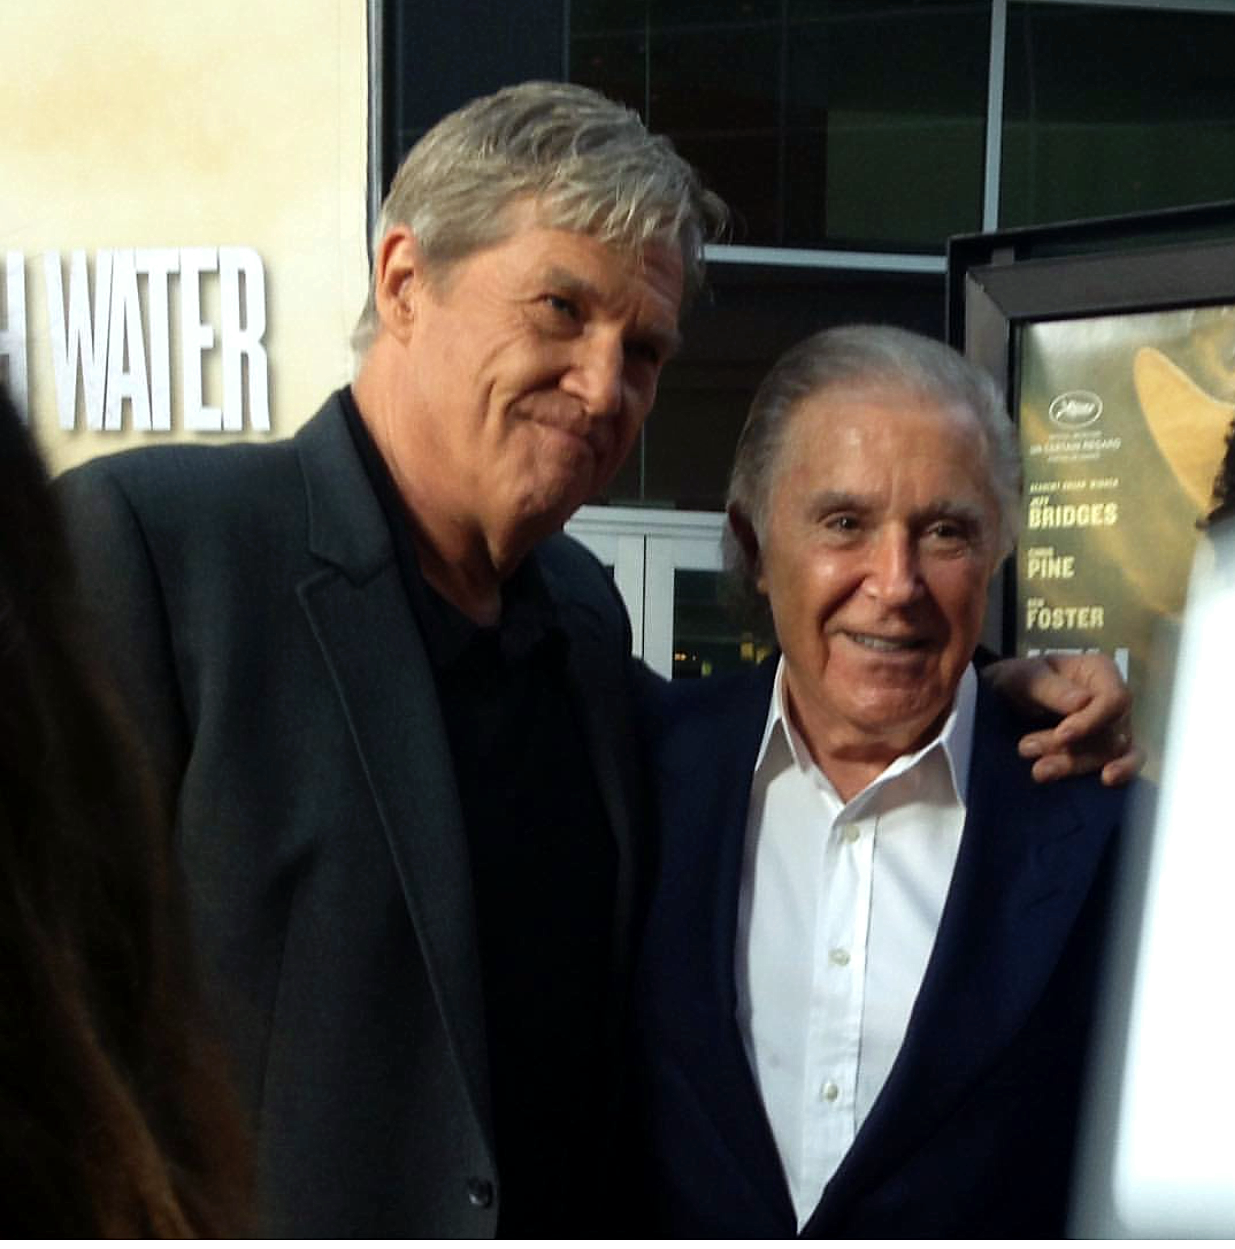 Hell or High Water, Jeff Bridges, movie premiere